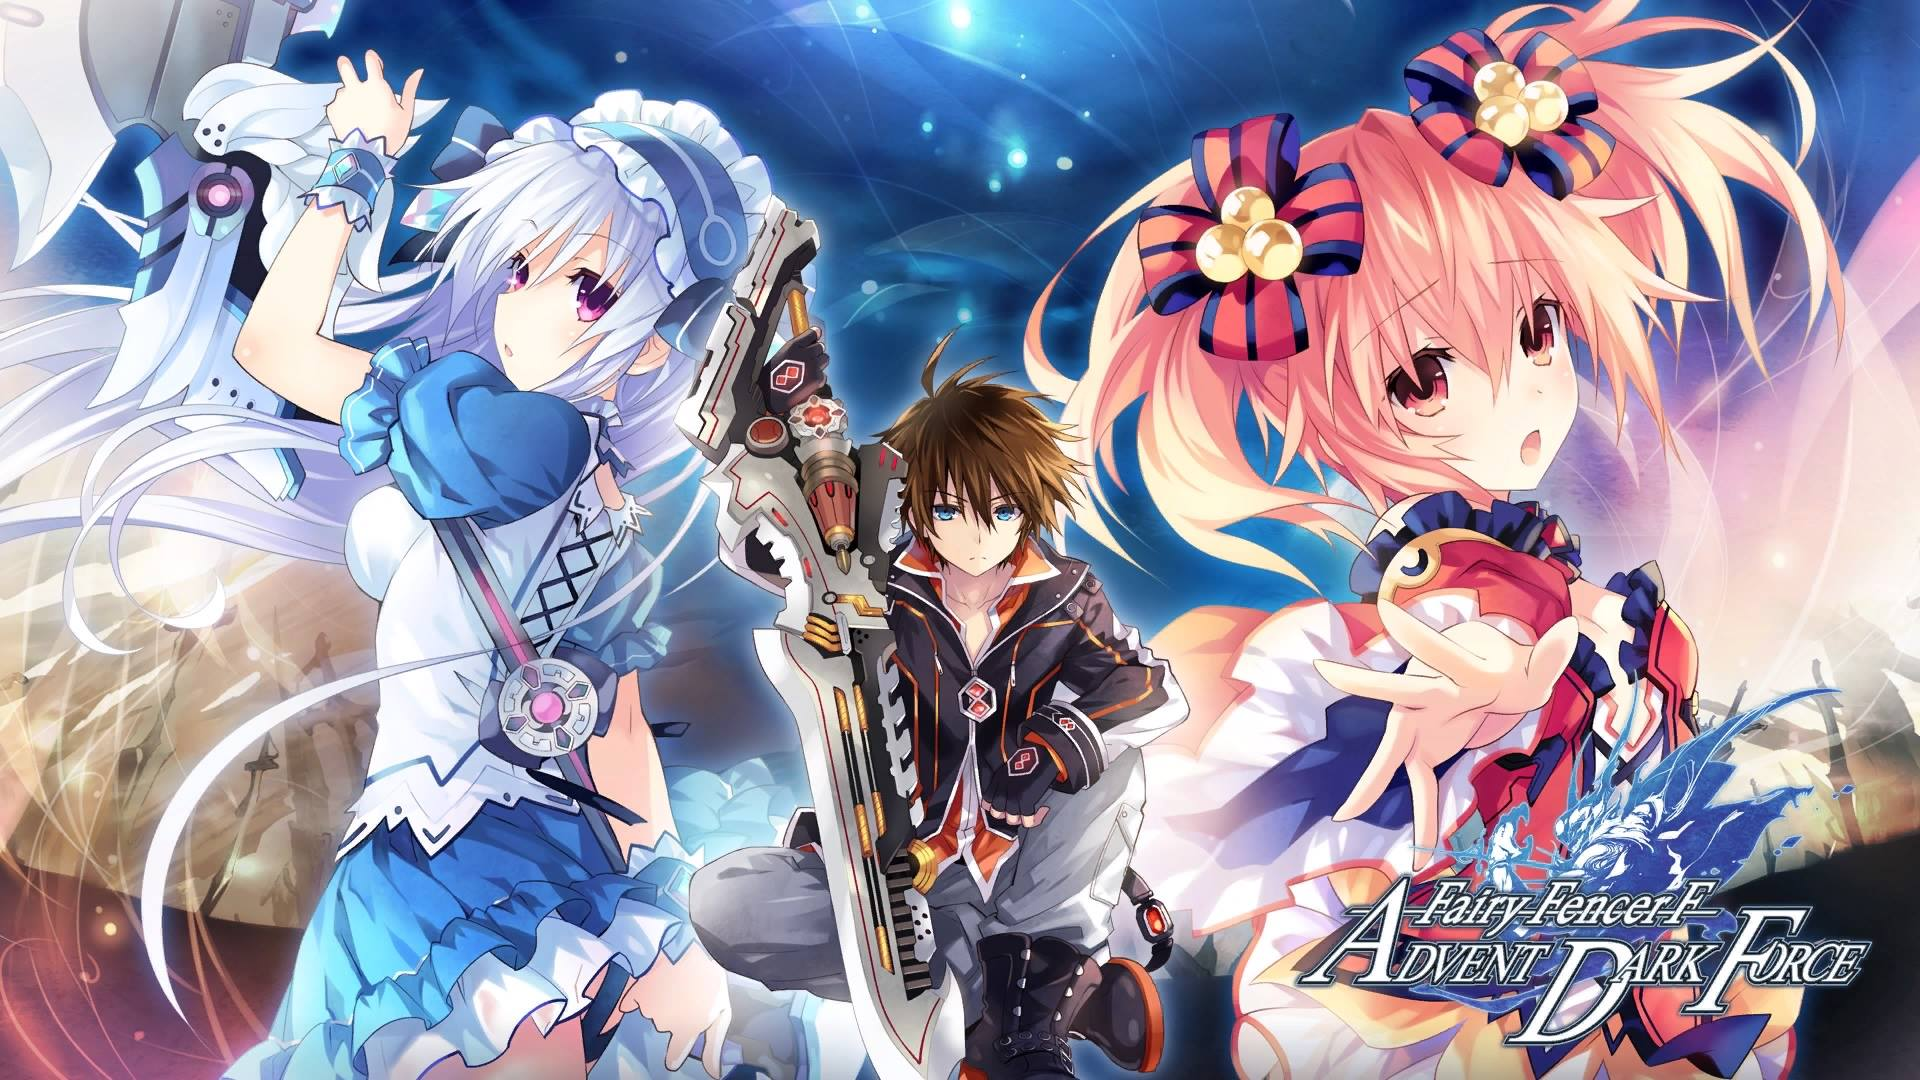 Rain Fall Live Wallpaper Review Fairy Fencer F Advent Dark Force Part 2